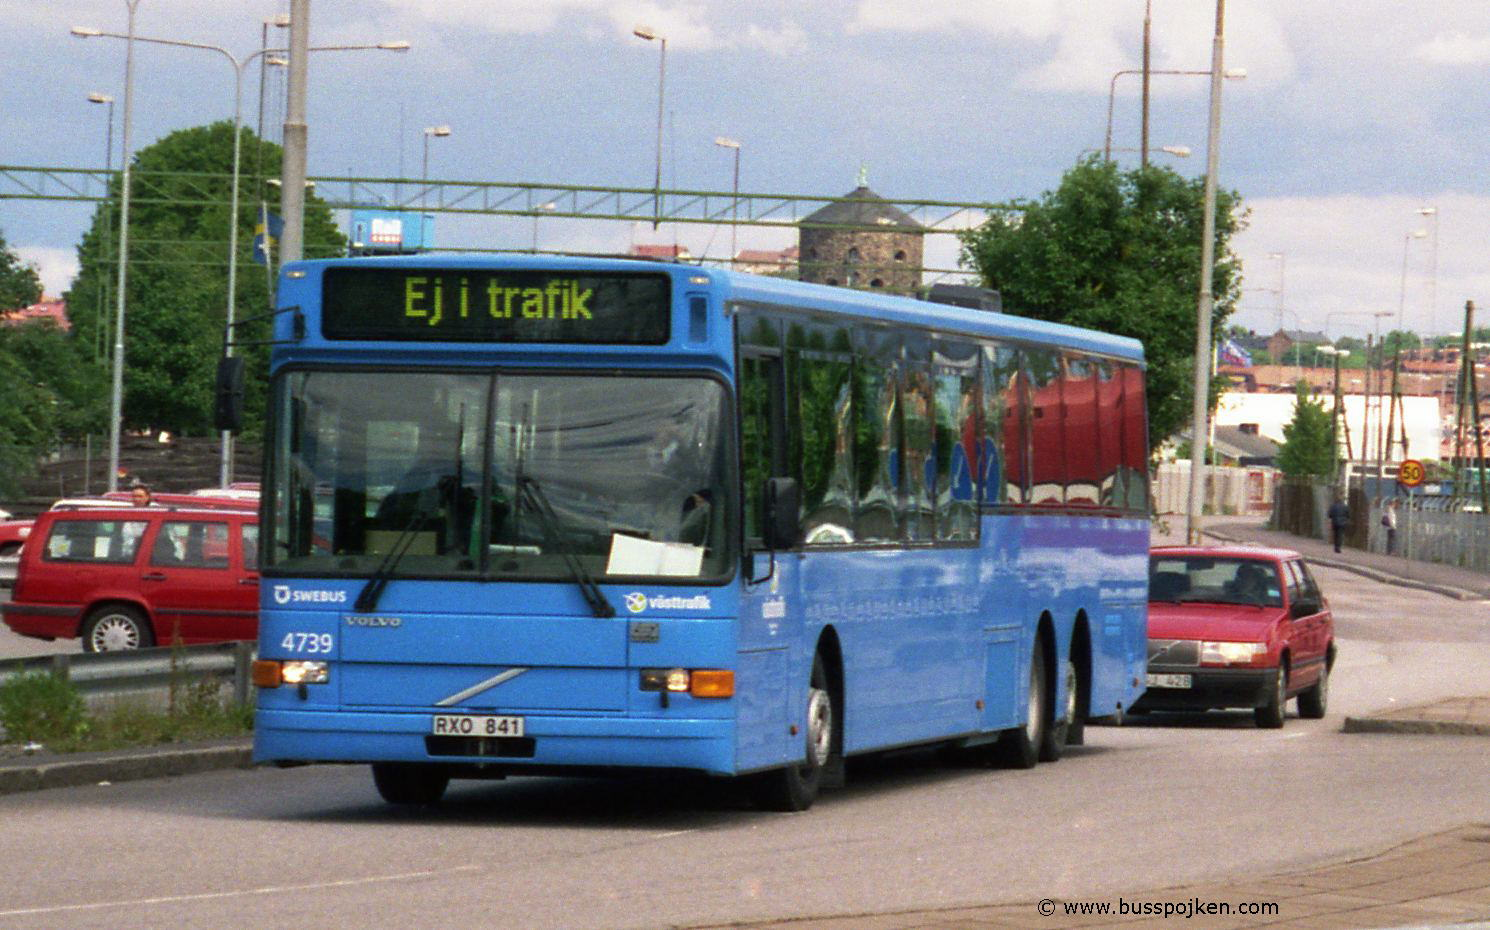 Swebus 4739 coming from the depot. Almost brand new in June 2001.